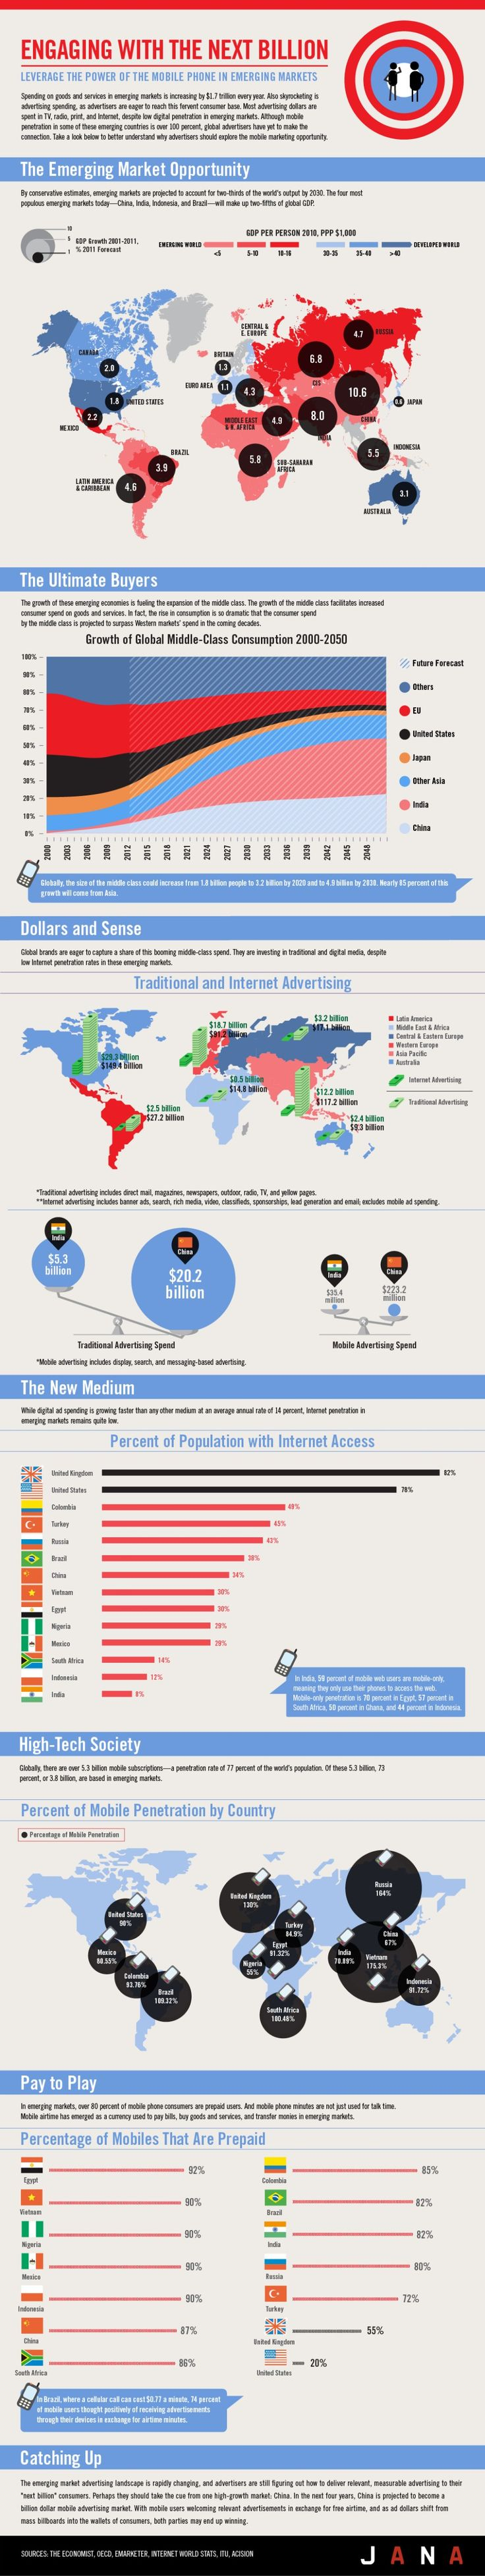 Mobile advertising is way more relevant globally - but can we get there fast enough?